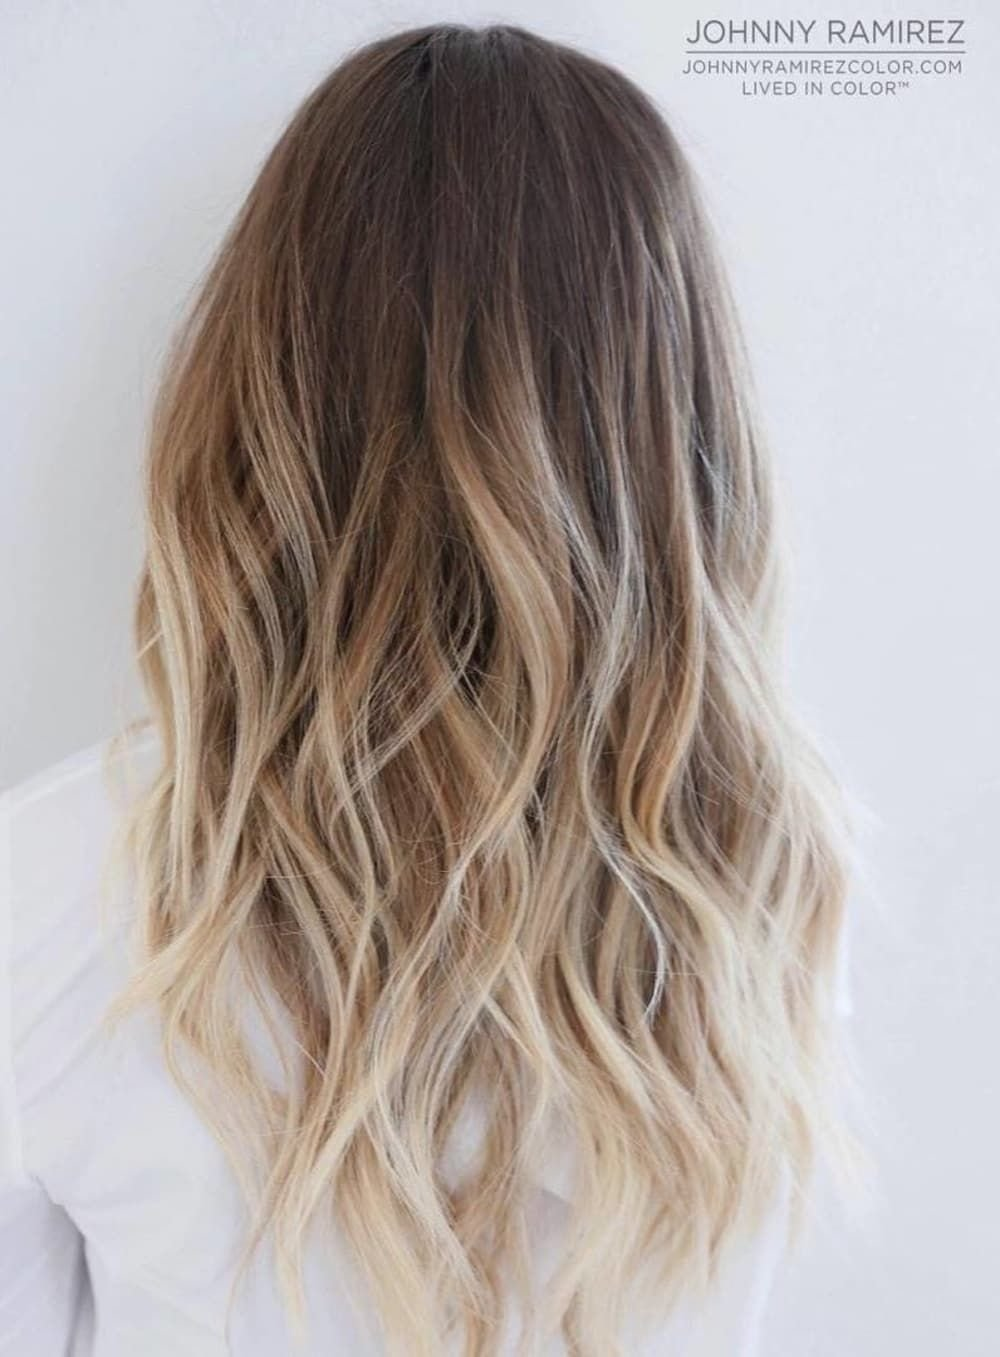 10 Attractive Brown & Blonde Hair Color Ideas 70 flattering balayage hair color ideas for 2018 blonde ombre hair 1 2021